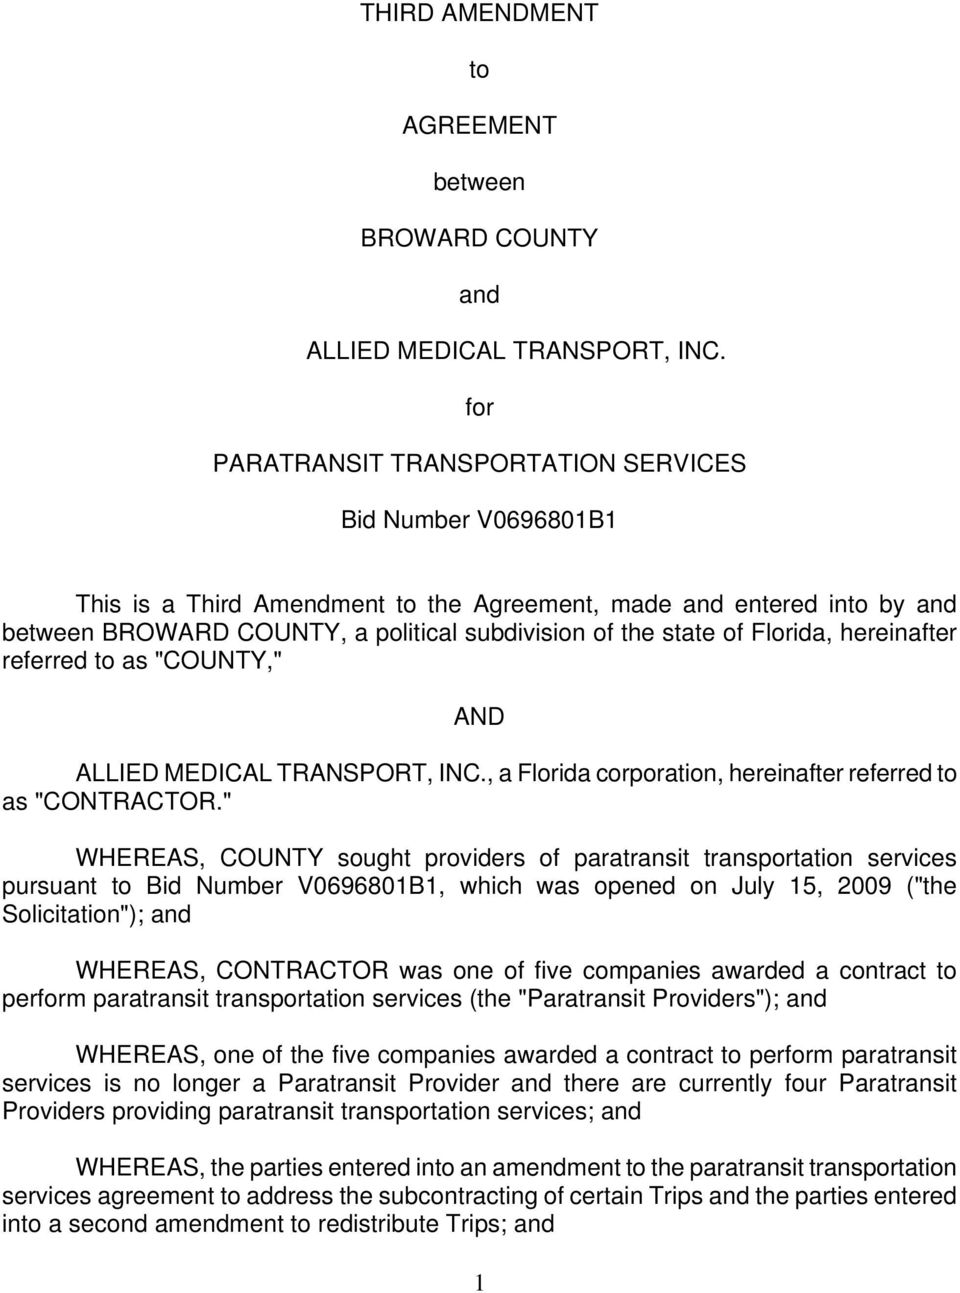 "Florida, hereinafter referred to as ""COUNTY,"" AND ALLIED MEDICAL TRANSPORT, INC., a Florida corporation, hereinafter referred to as ""CONTRACTOR."